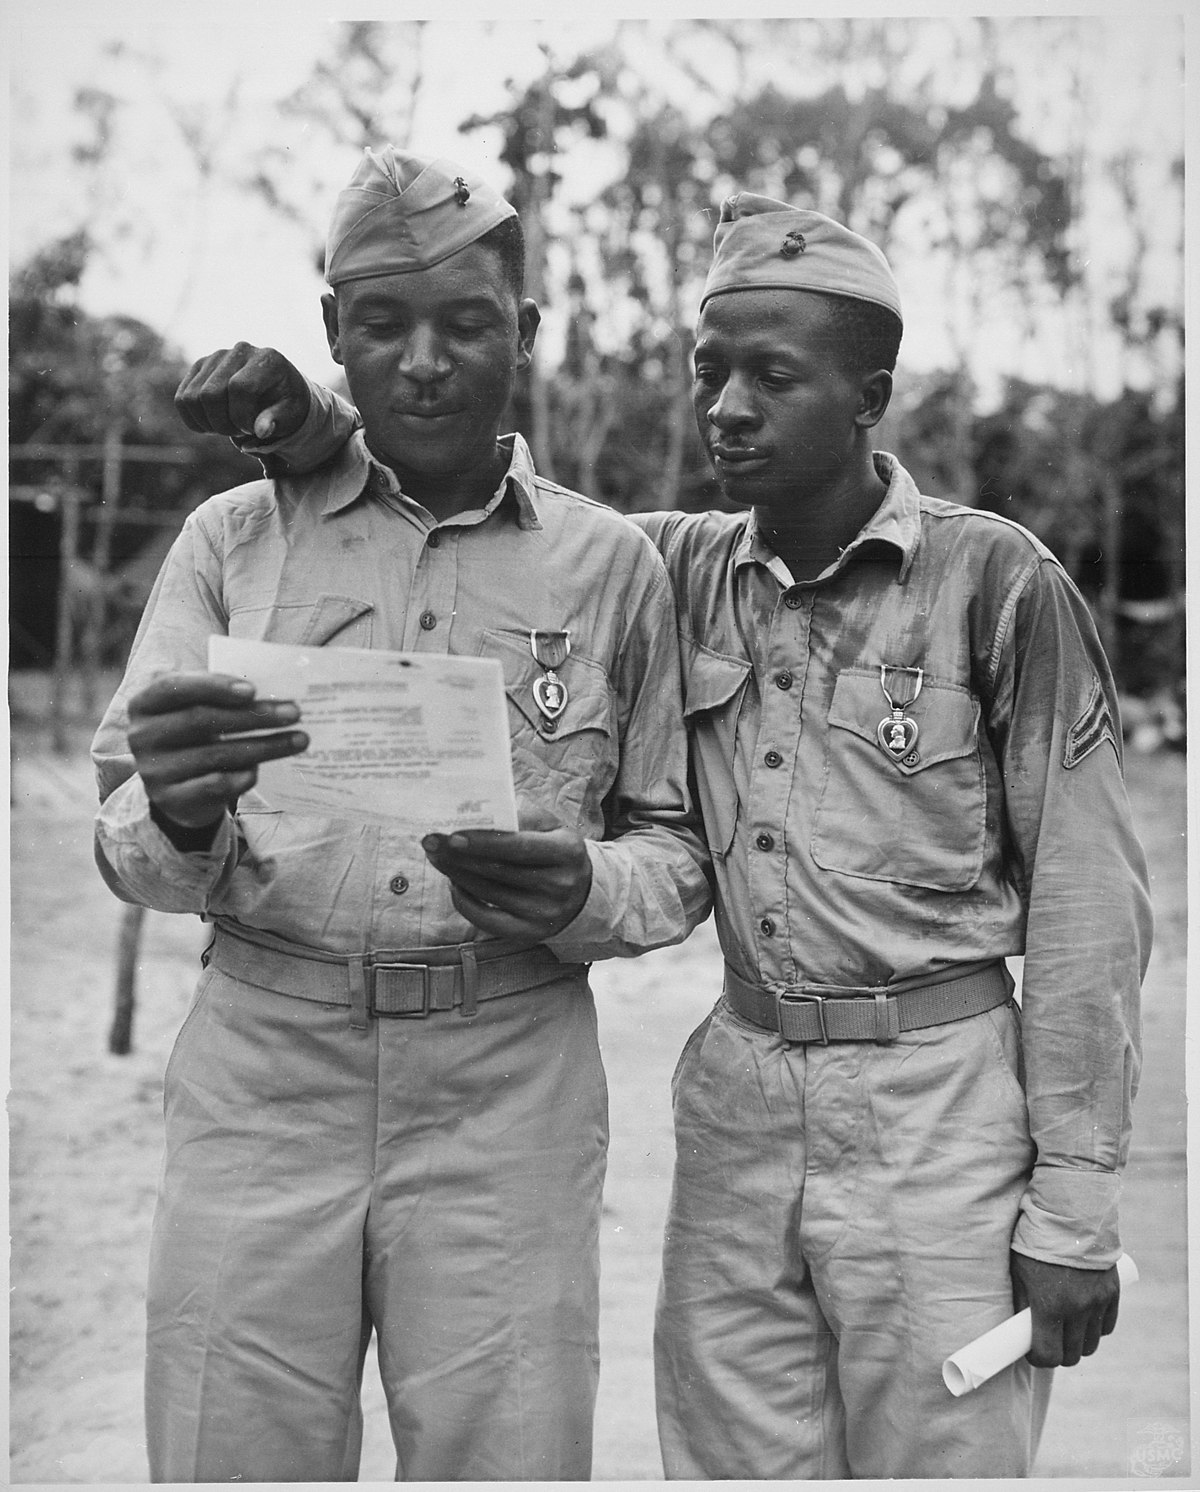 """File:""""First Negro Marines decorated by the famed Second Marine Division somewhere in the Pacific (left to right) Staff Sgt Ti - NARA - 535872.jpg - Wikimedia Commons"""